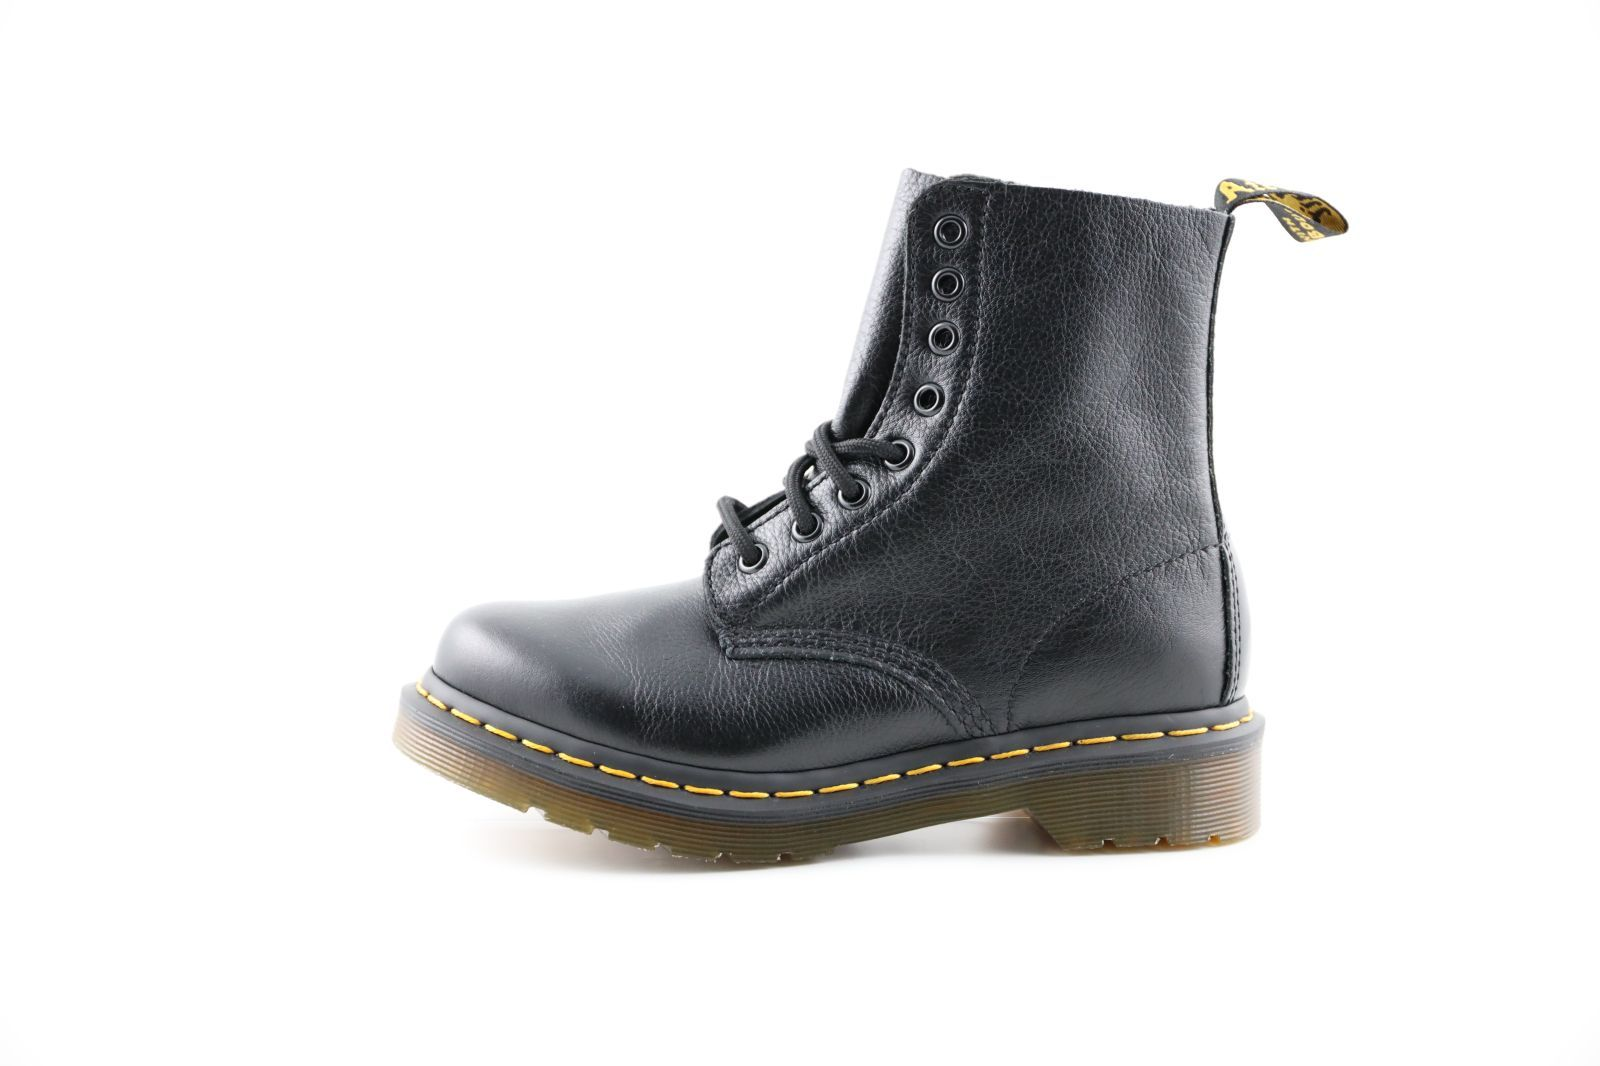 Dr Martens Bottine Noir dames (Pascal - Pascal Virginia 1460) - Marques à Suivre